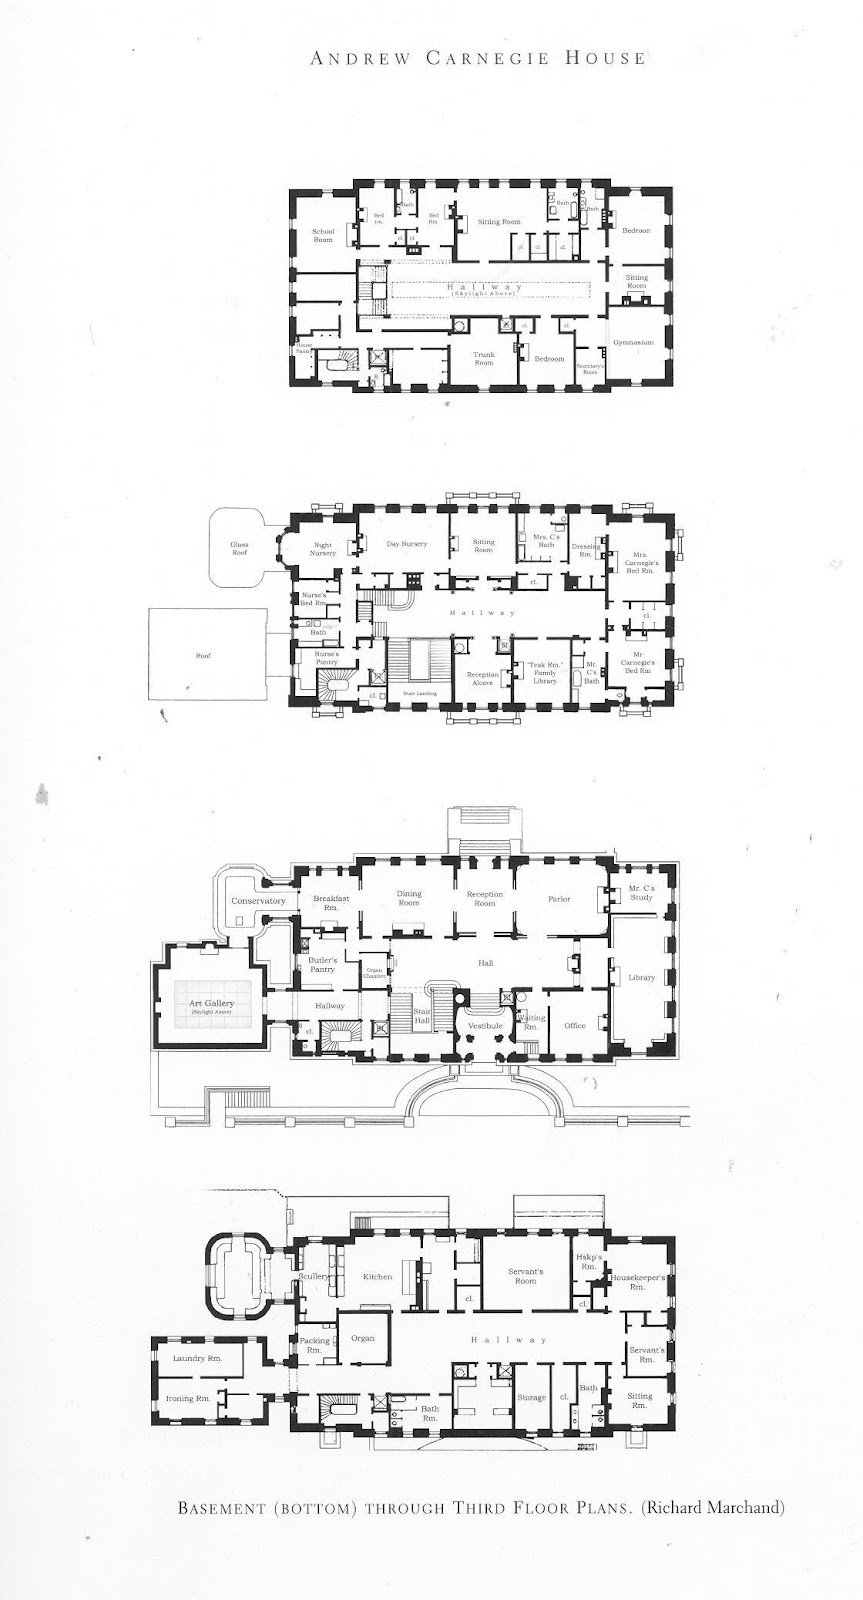 The gilded age era andrew carnegie 39 s fifth avenue palace for Palace floor plans